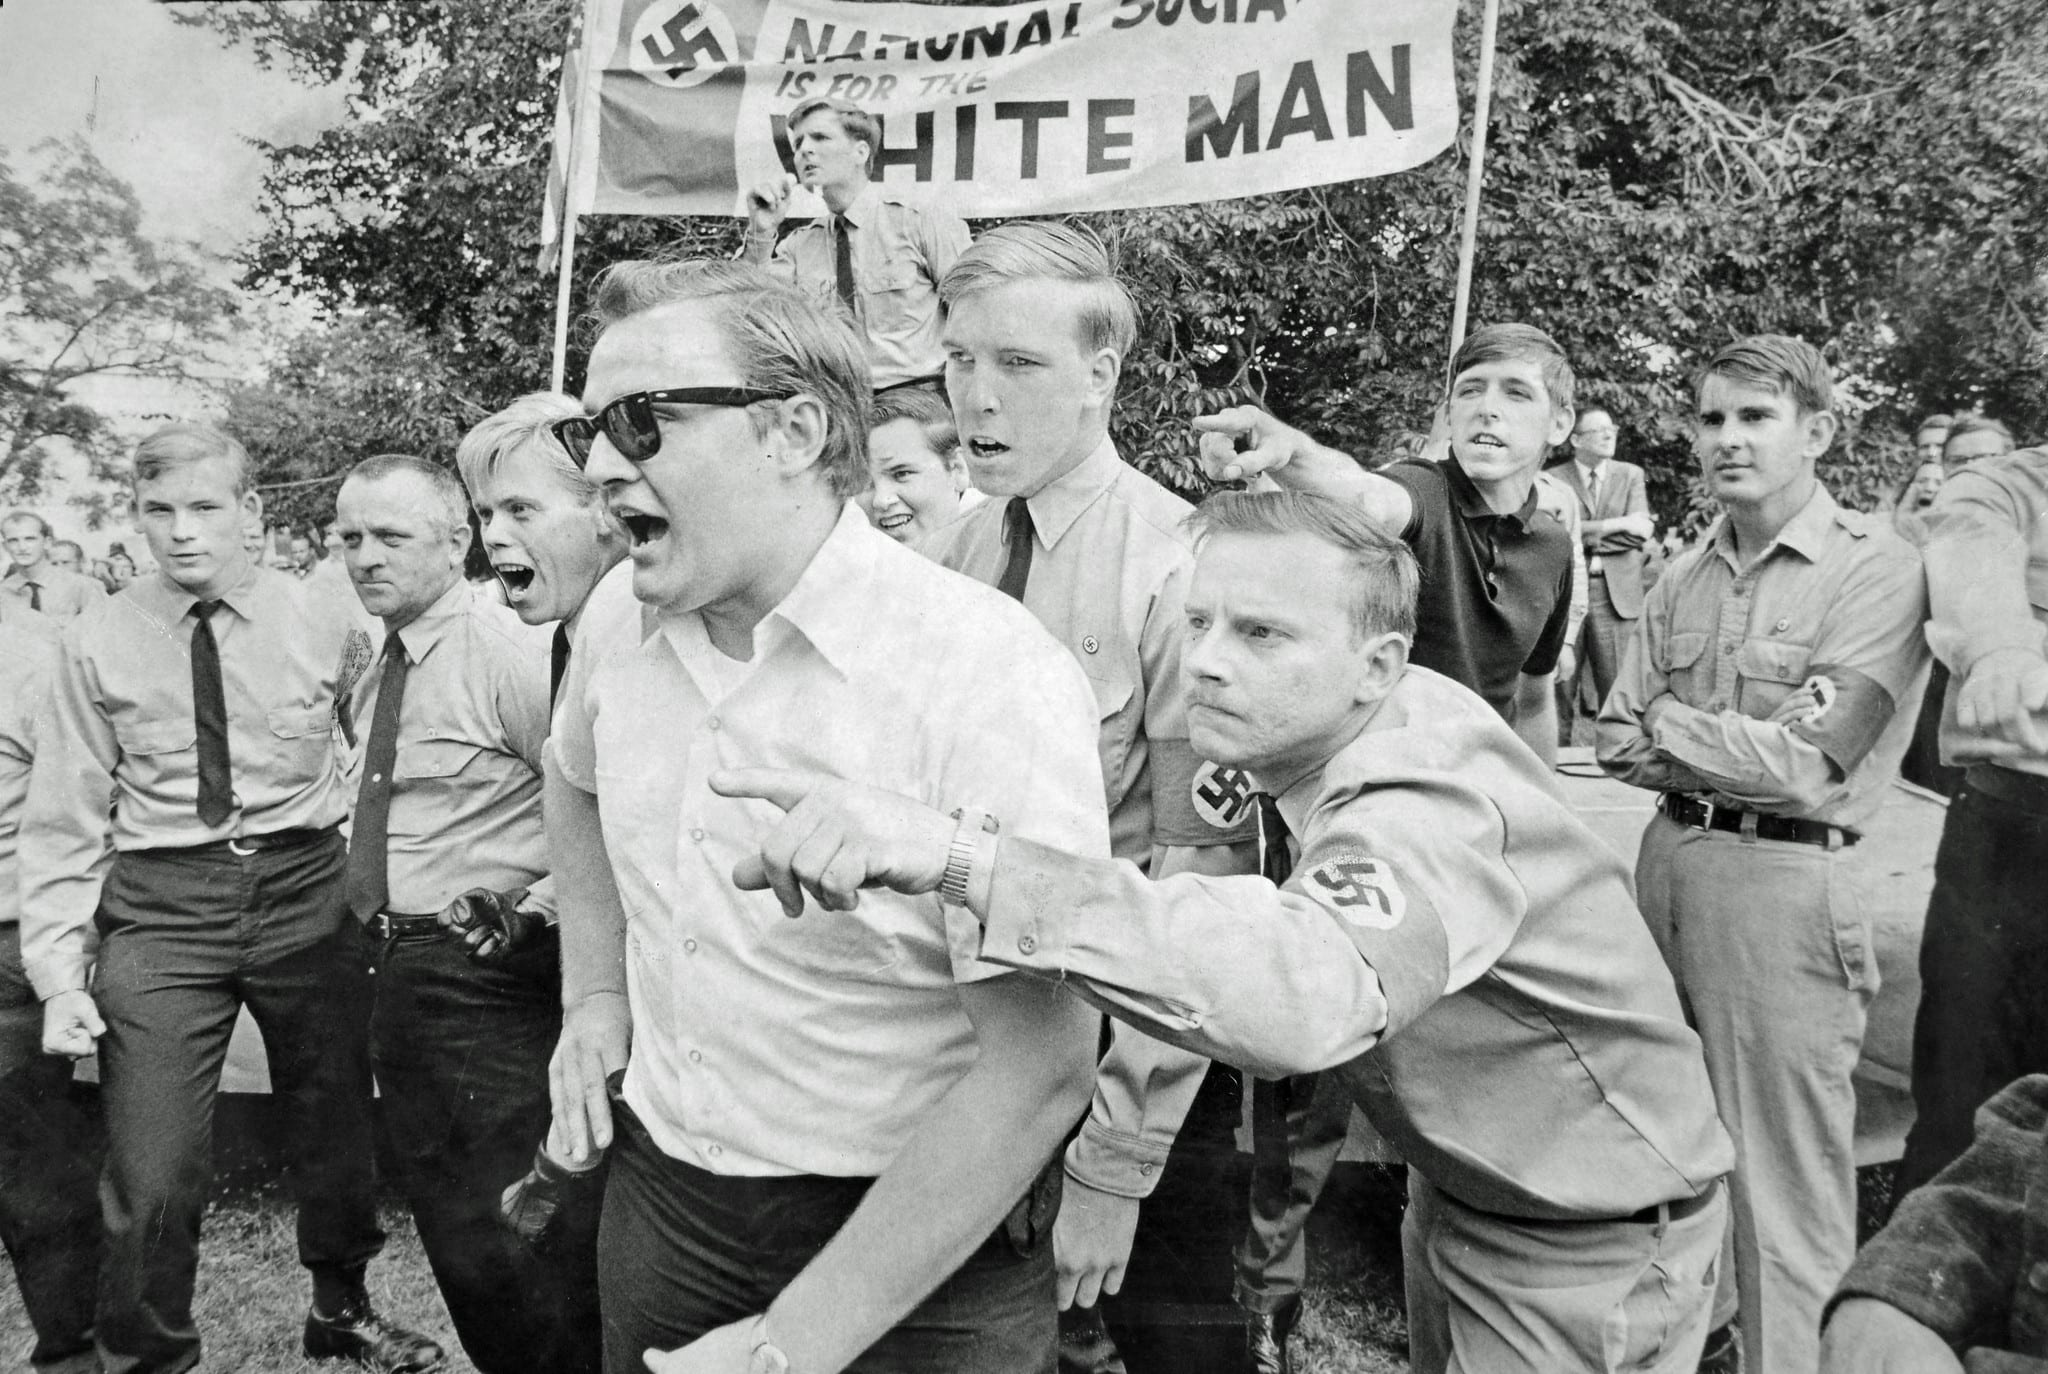 Members of National Socialist White Peoples Party respond to taunts from counter-demonstrators who were protesting Honor America Day in Washington, D.C. and staging a marijuana smoke-in July 4-5, 1970.